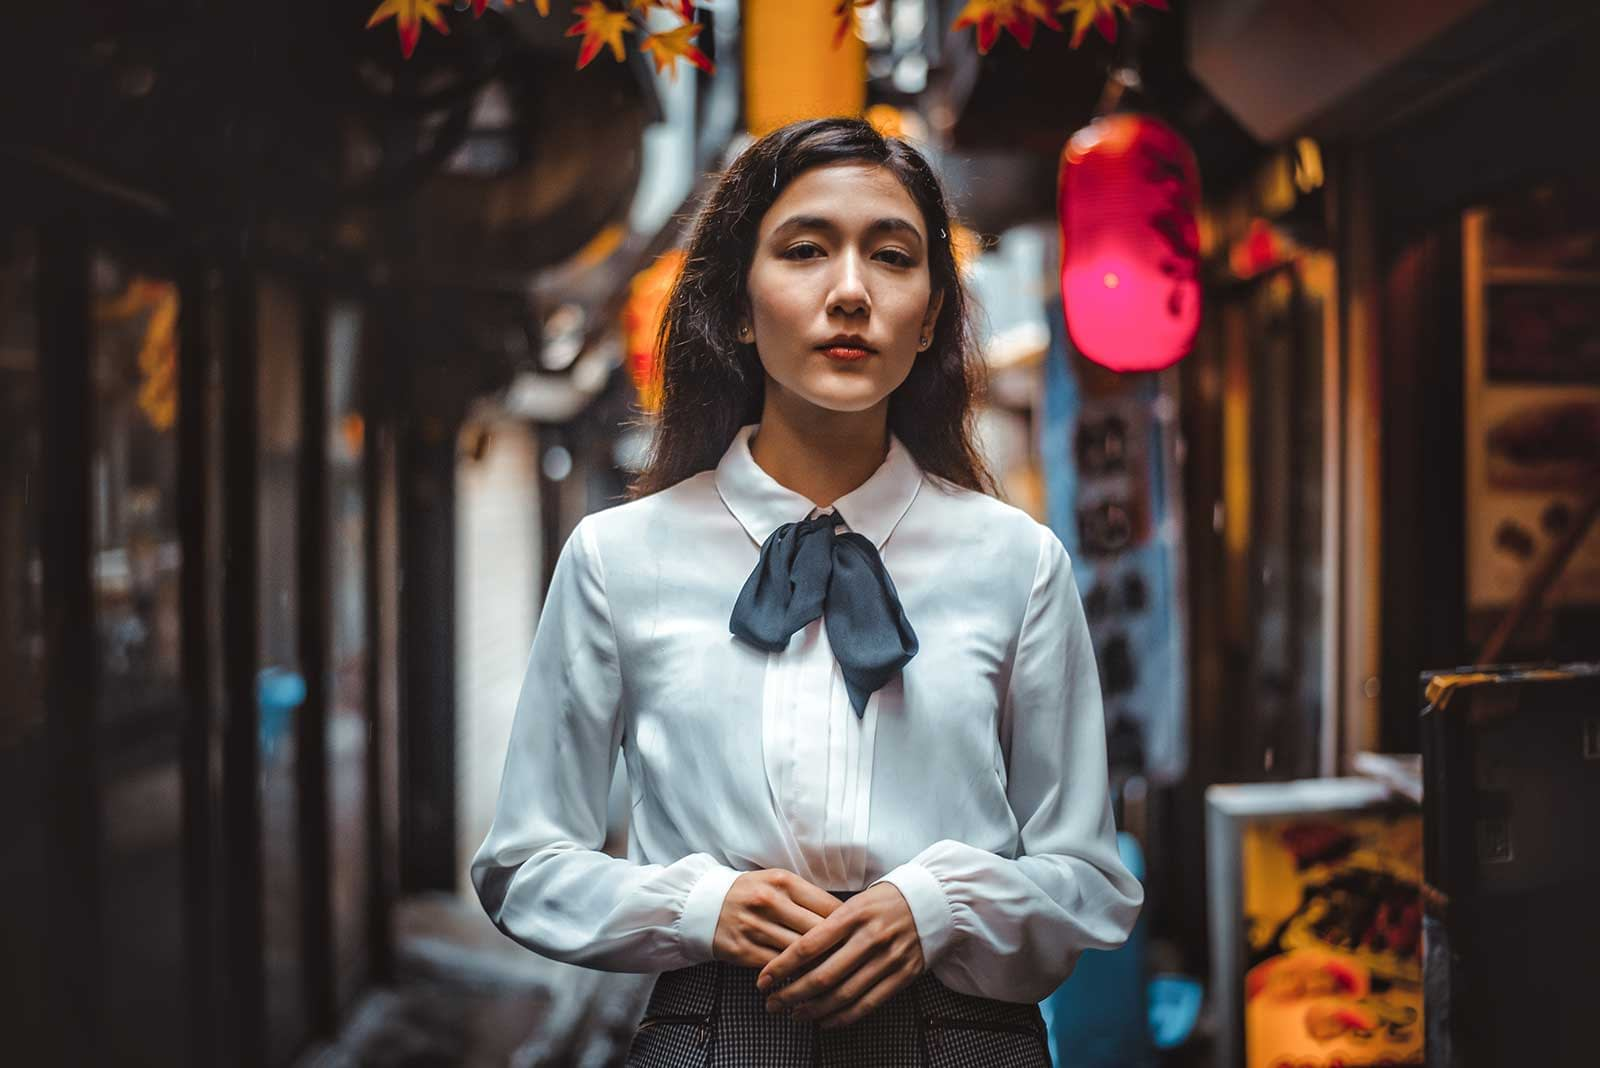 Portrait of a woman in Japanese town after editing using Lightroom portrait preset